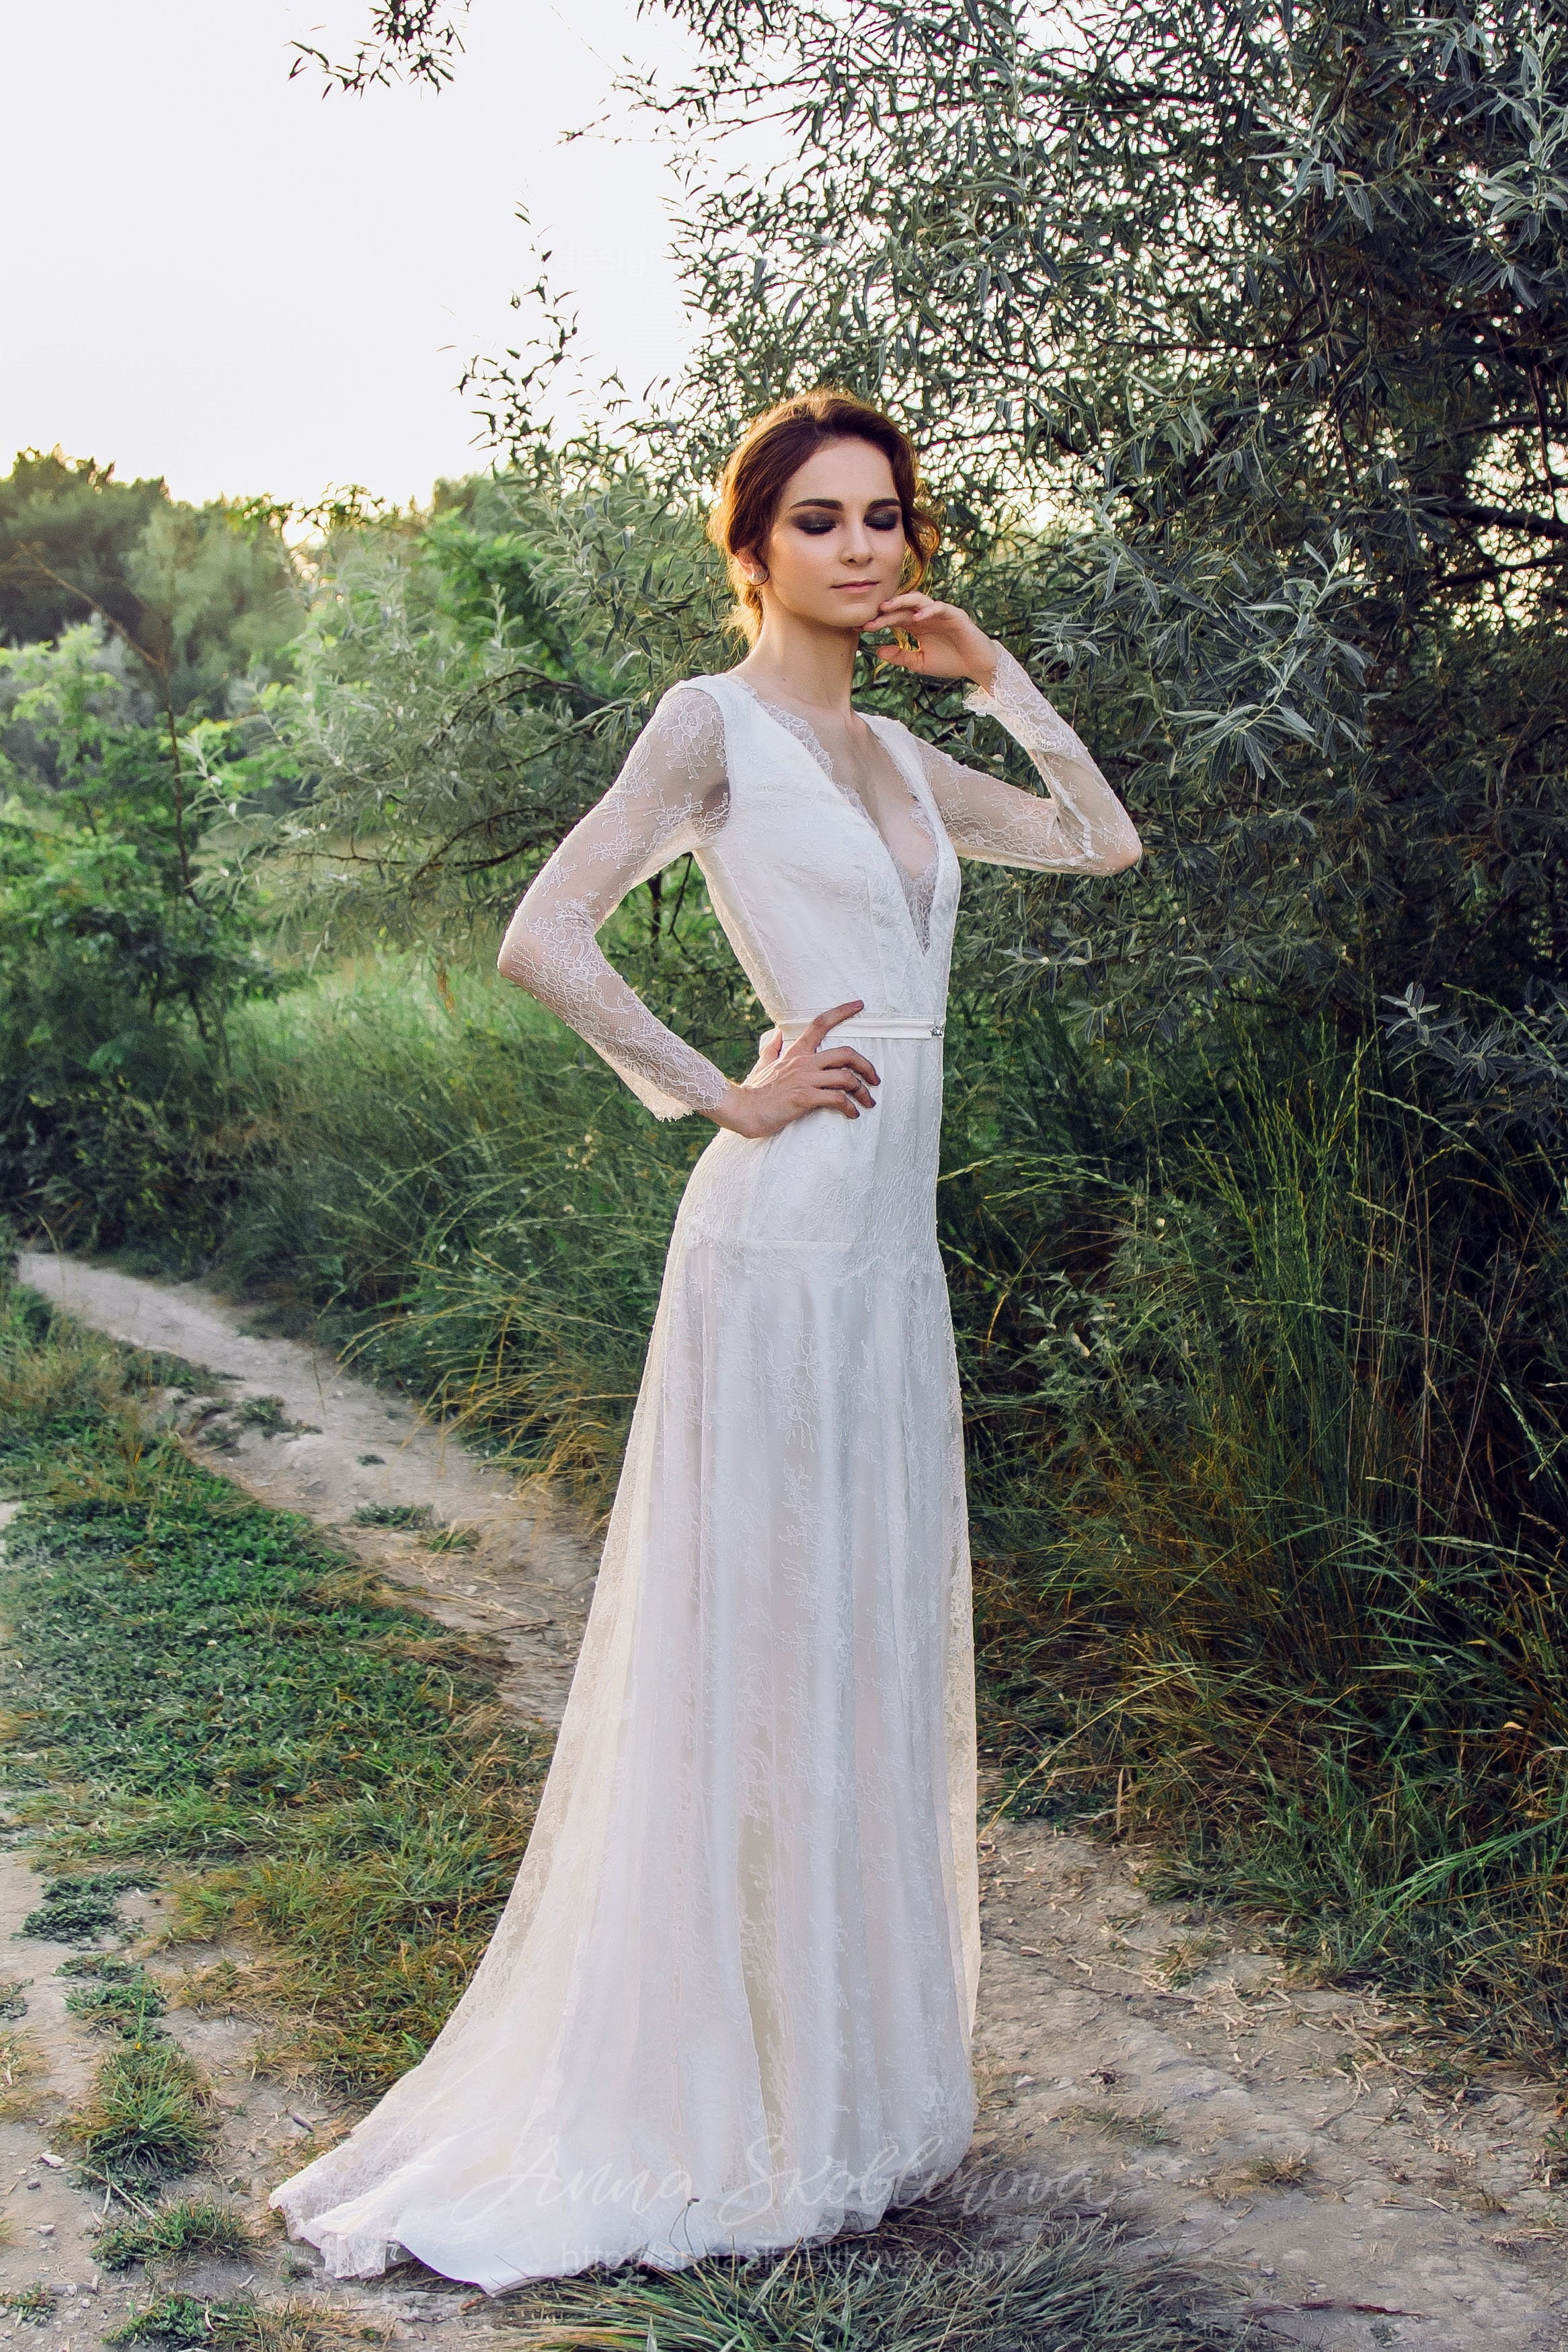 Ivory Bridal Gown | Anna Skoblikova - Wedding Dresses & Evening Gowns